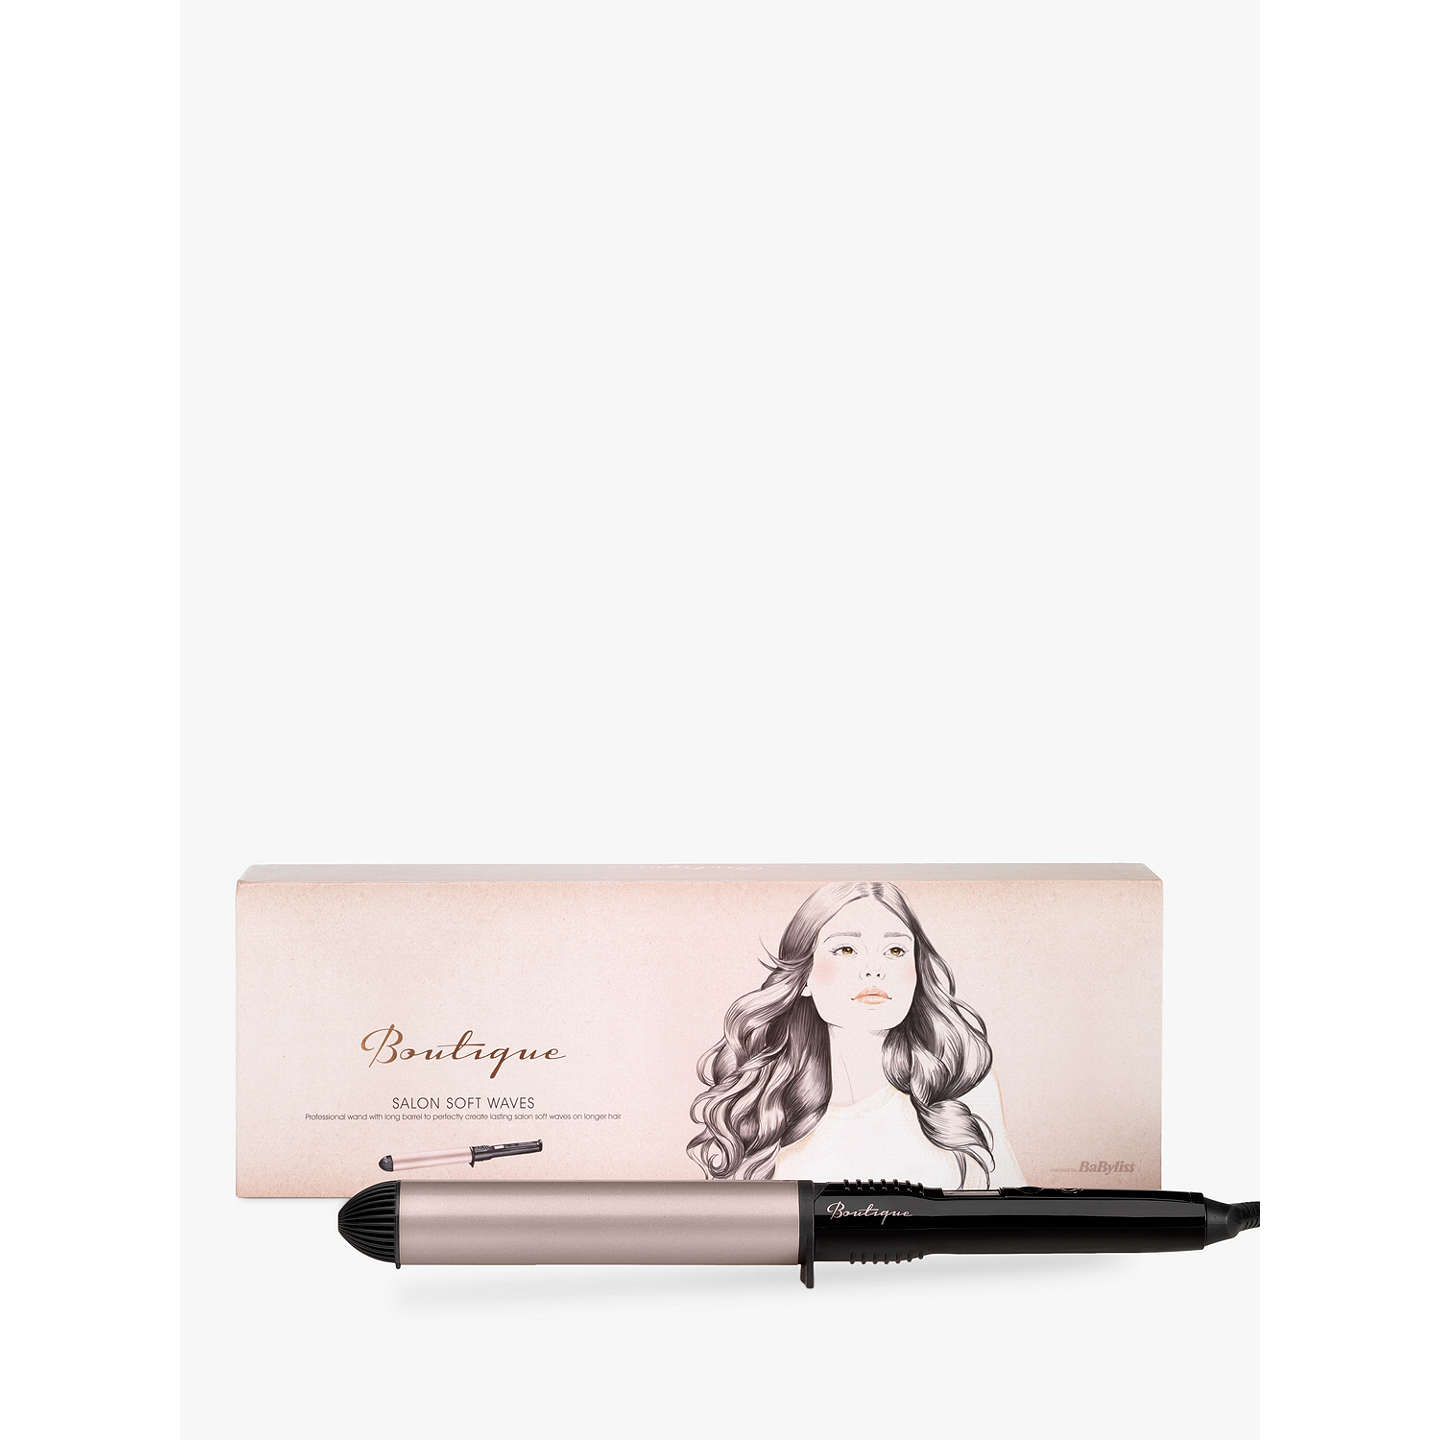 BuyBaByliss Boutique Salon Soft Waves Hair Styler Online at johnlewis.com